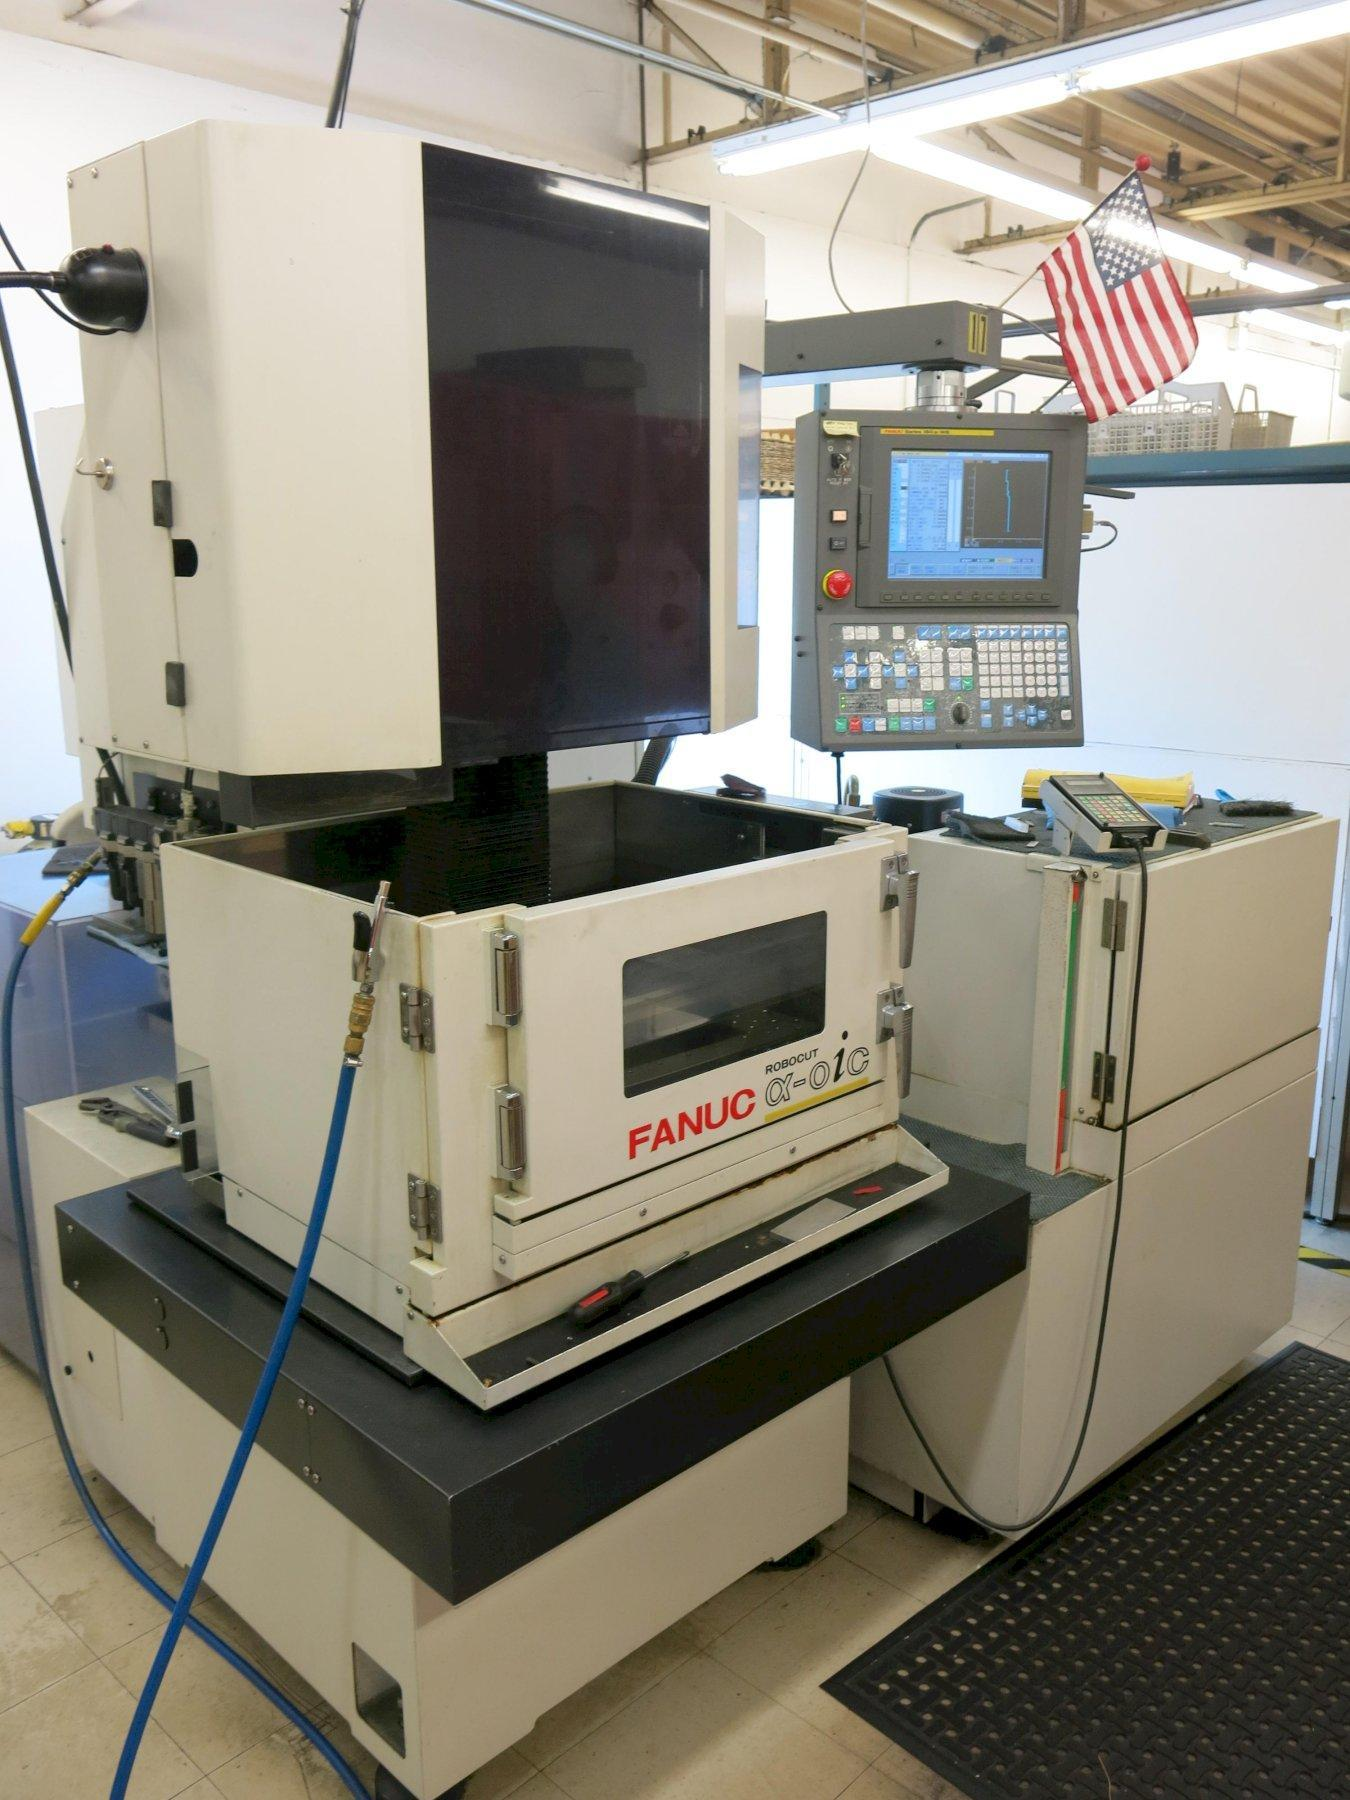 Fanuc Model Robocut Alpha-OiC CNC Wire EDM, with Fanuc 18O-iS-WB Control, New 2006